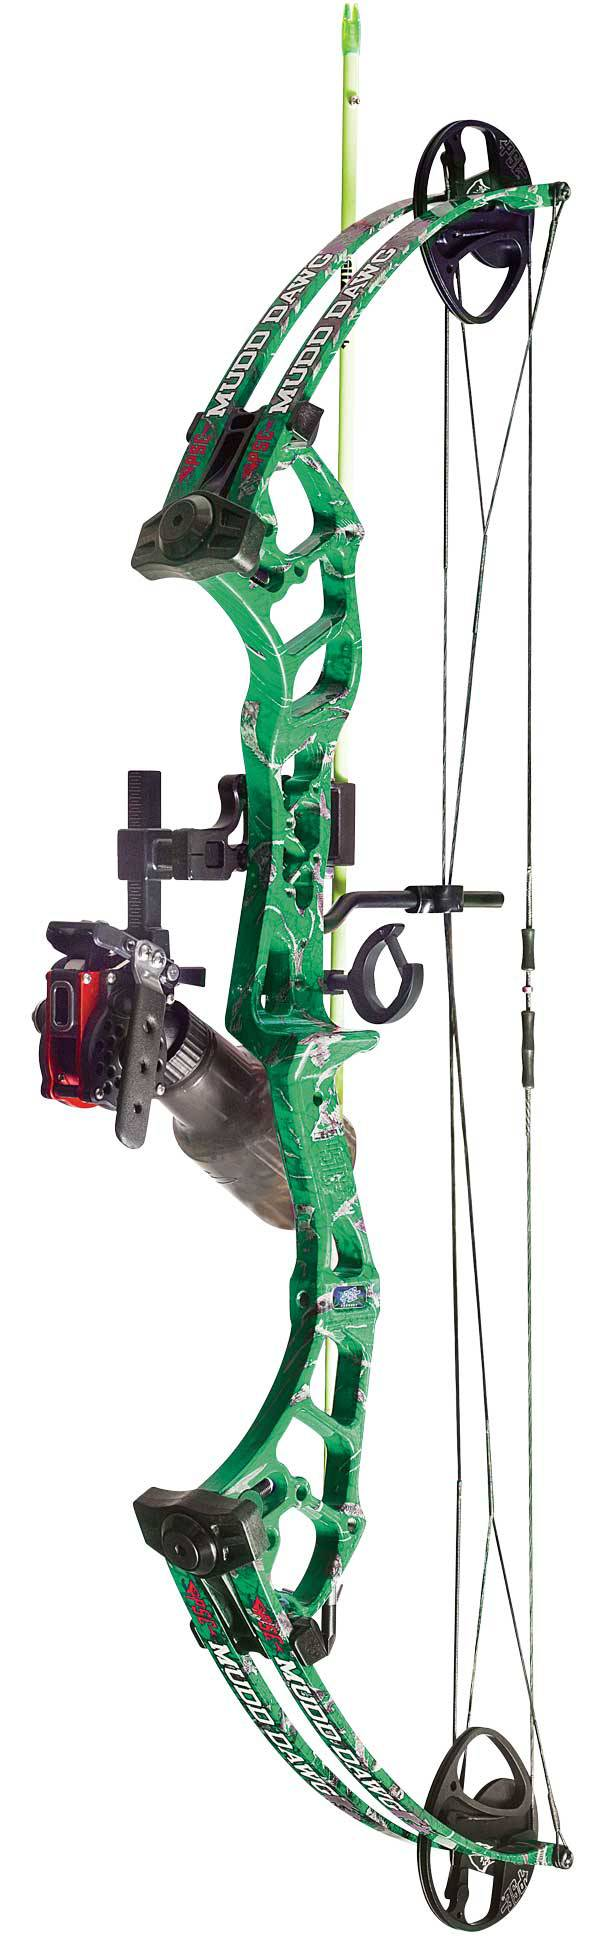 PSE Mad Fish Mudd Dawg Bowfishing Bow Cajun Package product image